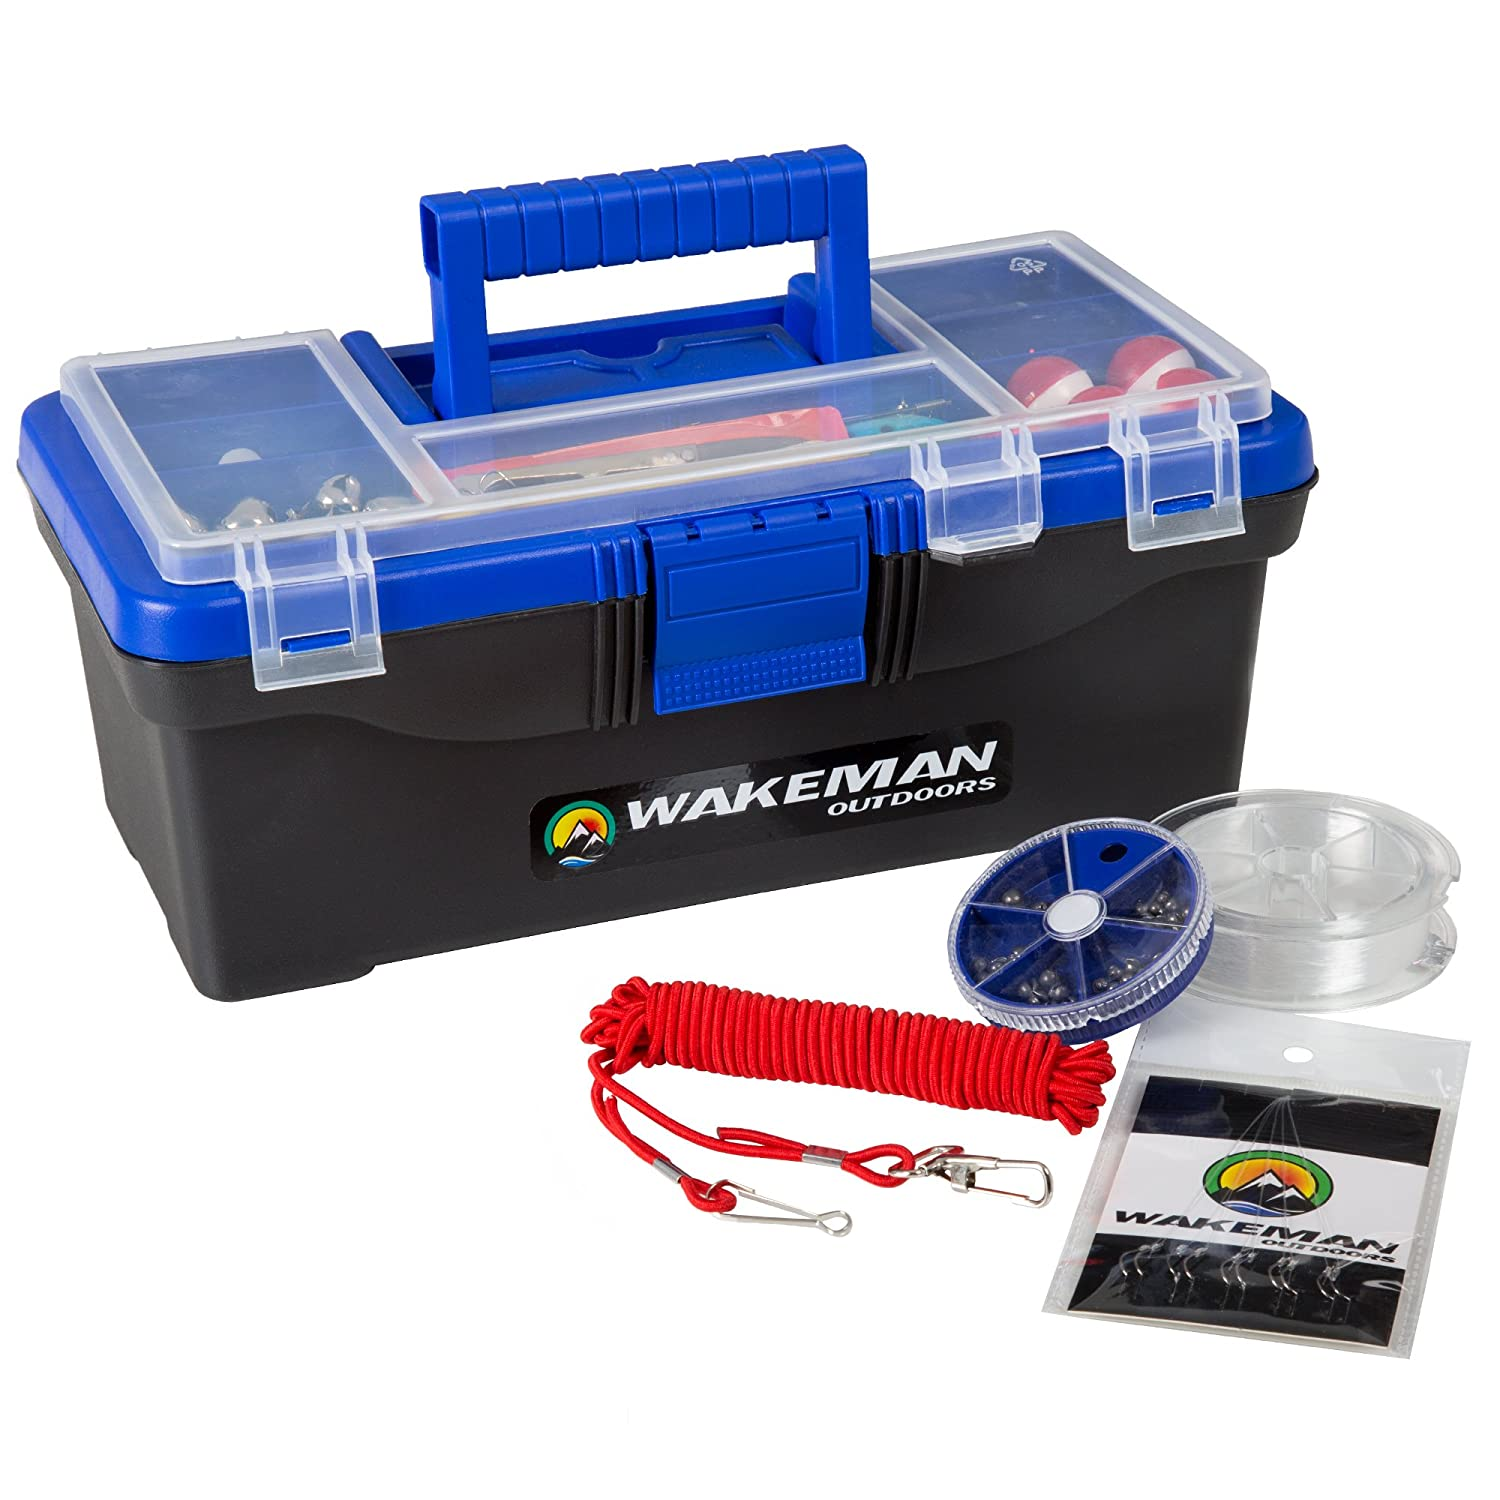 Wakeman Fishing Single Tray Tackle Box 55 Pc Tackle Kit review